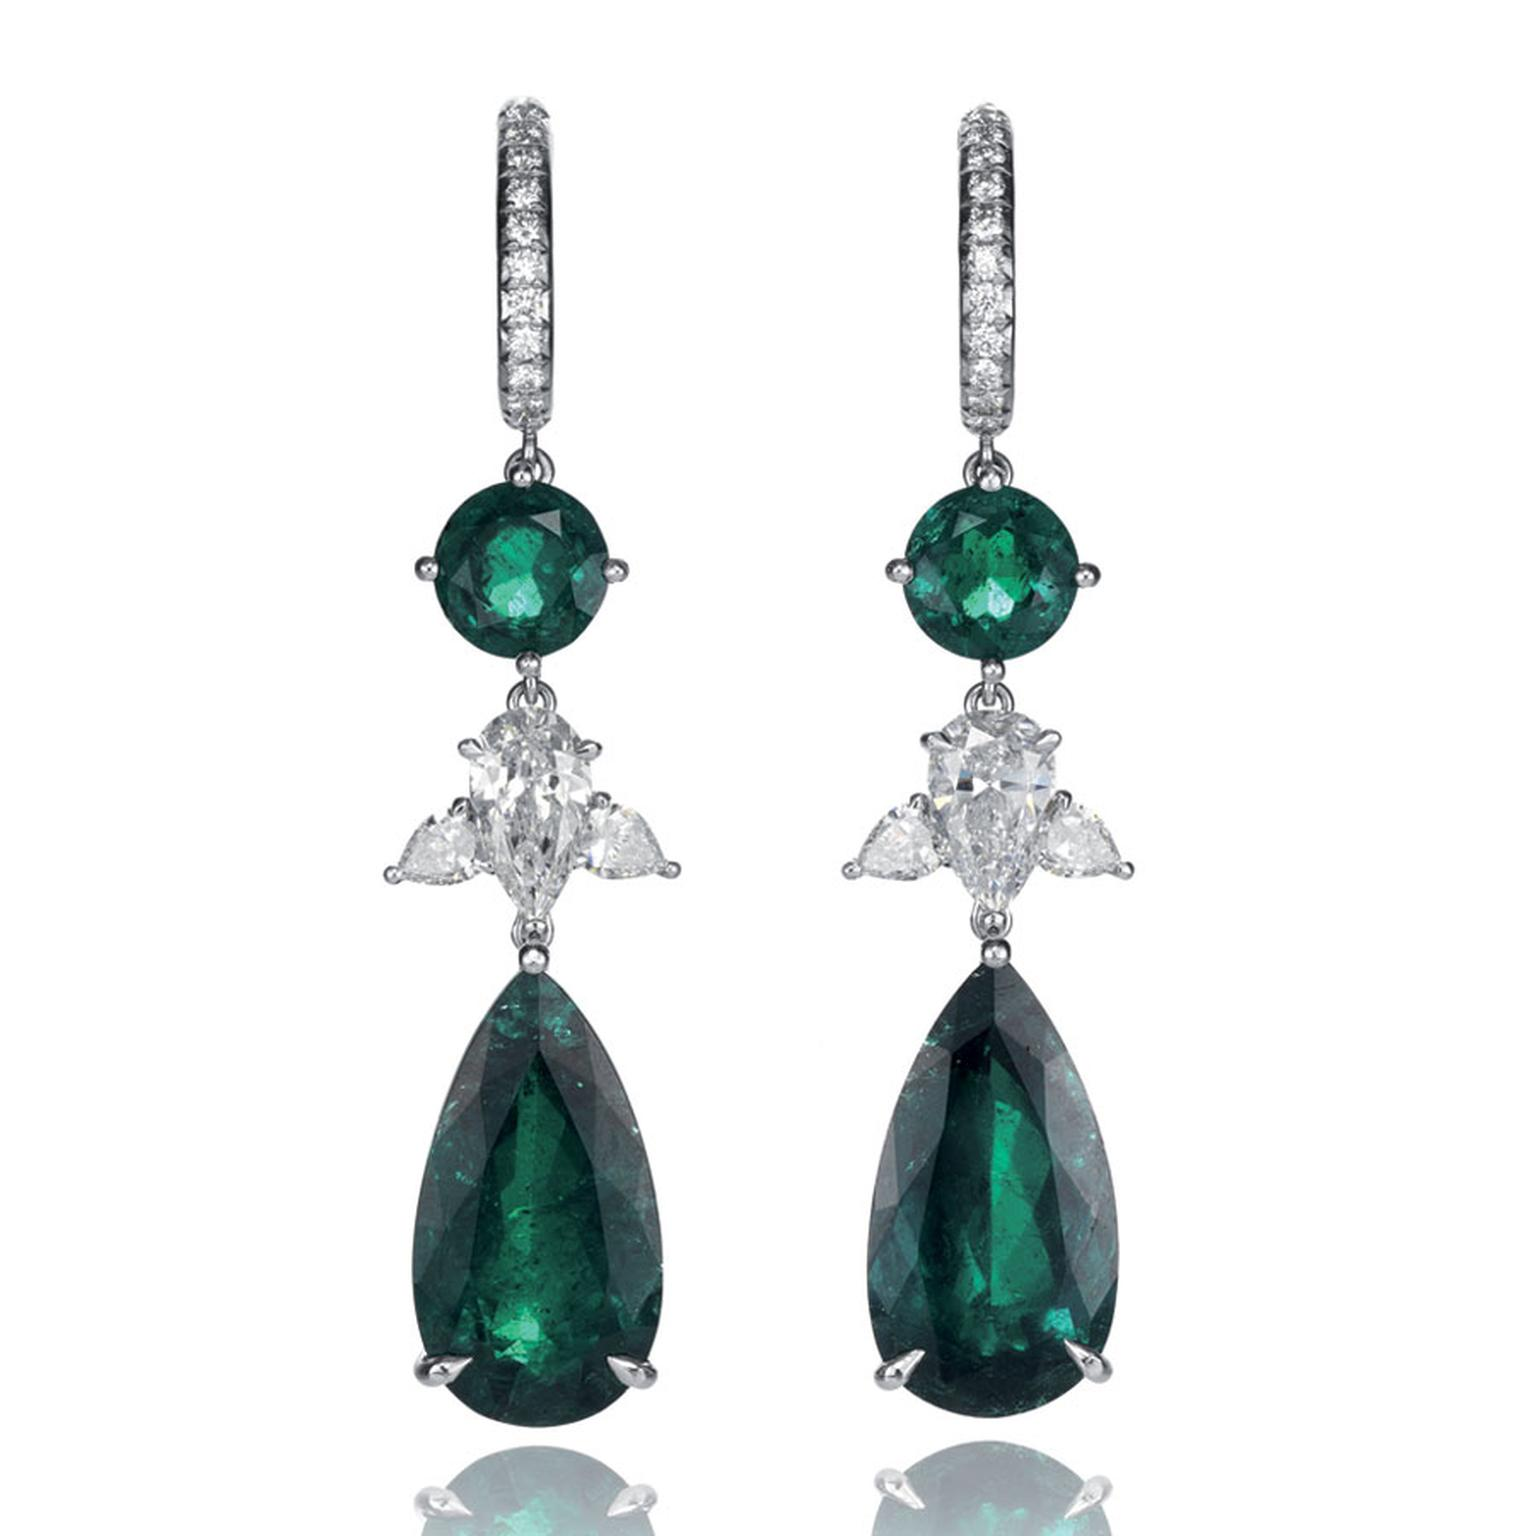 Chopard Chocolate Temptations Earrings, suspending two pear shaped emeralds, adorned with two round emeralds and pear shaped diamonds, set in white gold POA